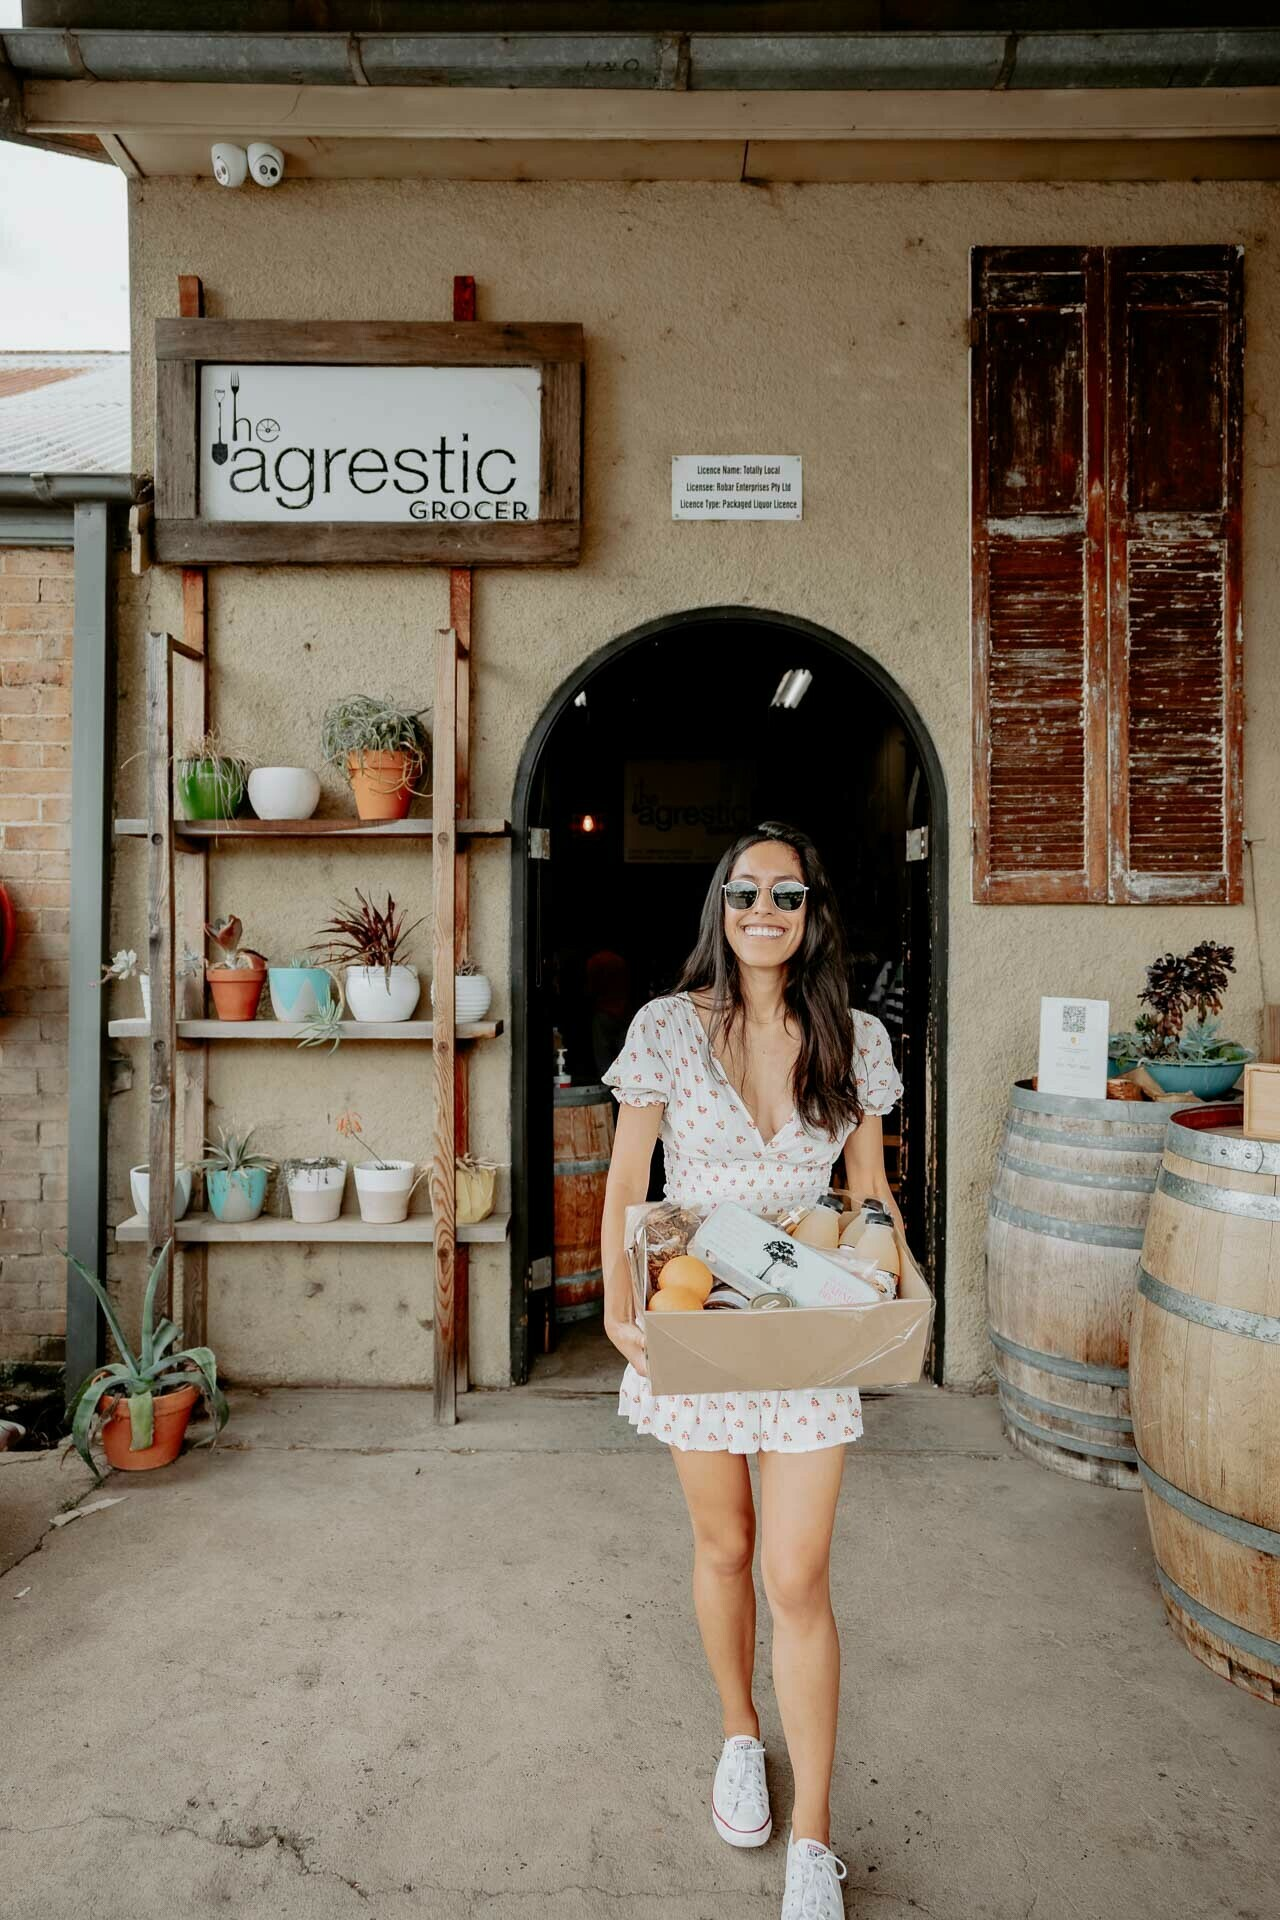 Love Wine, Fancy Snacks, and Adventures? Head Straight to Orange!, photo by Lorena Rabbani, agrestic grocer, orange, nsw, cool summer